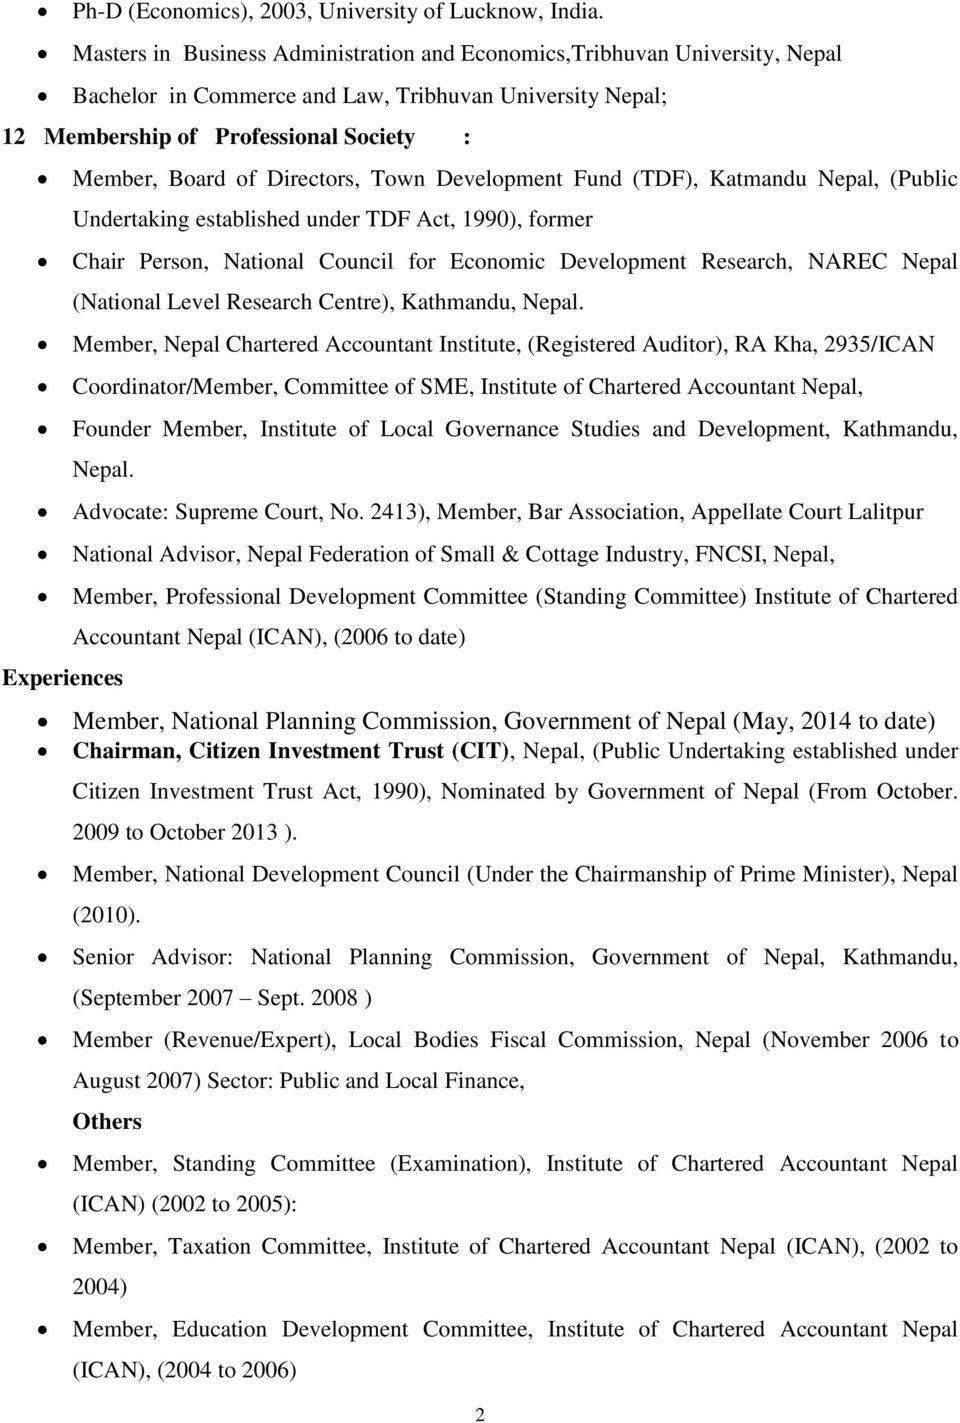 Directors, Town Development Fund (TDF), Katmandu Nepal, (Public Undertaking established under TDF Act, 1990), former Chair Person, National Council for Economic Development Research, NAREC Nepal